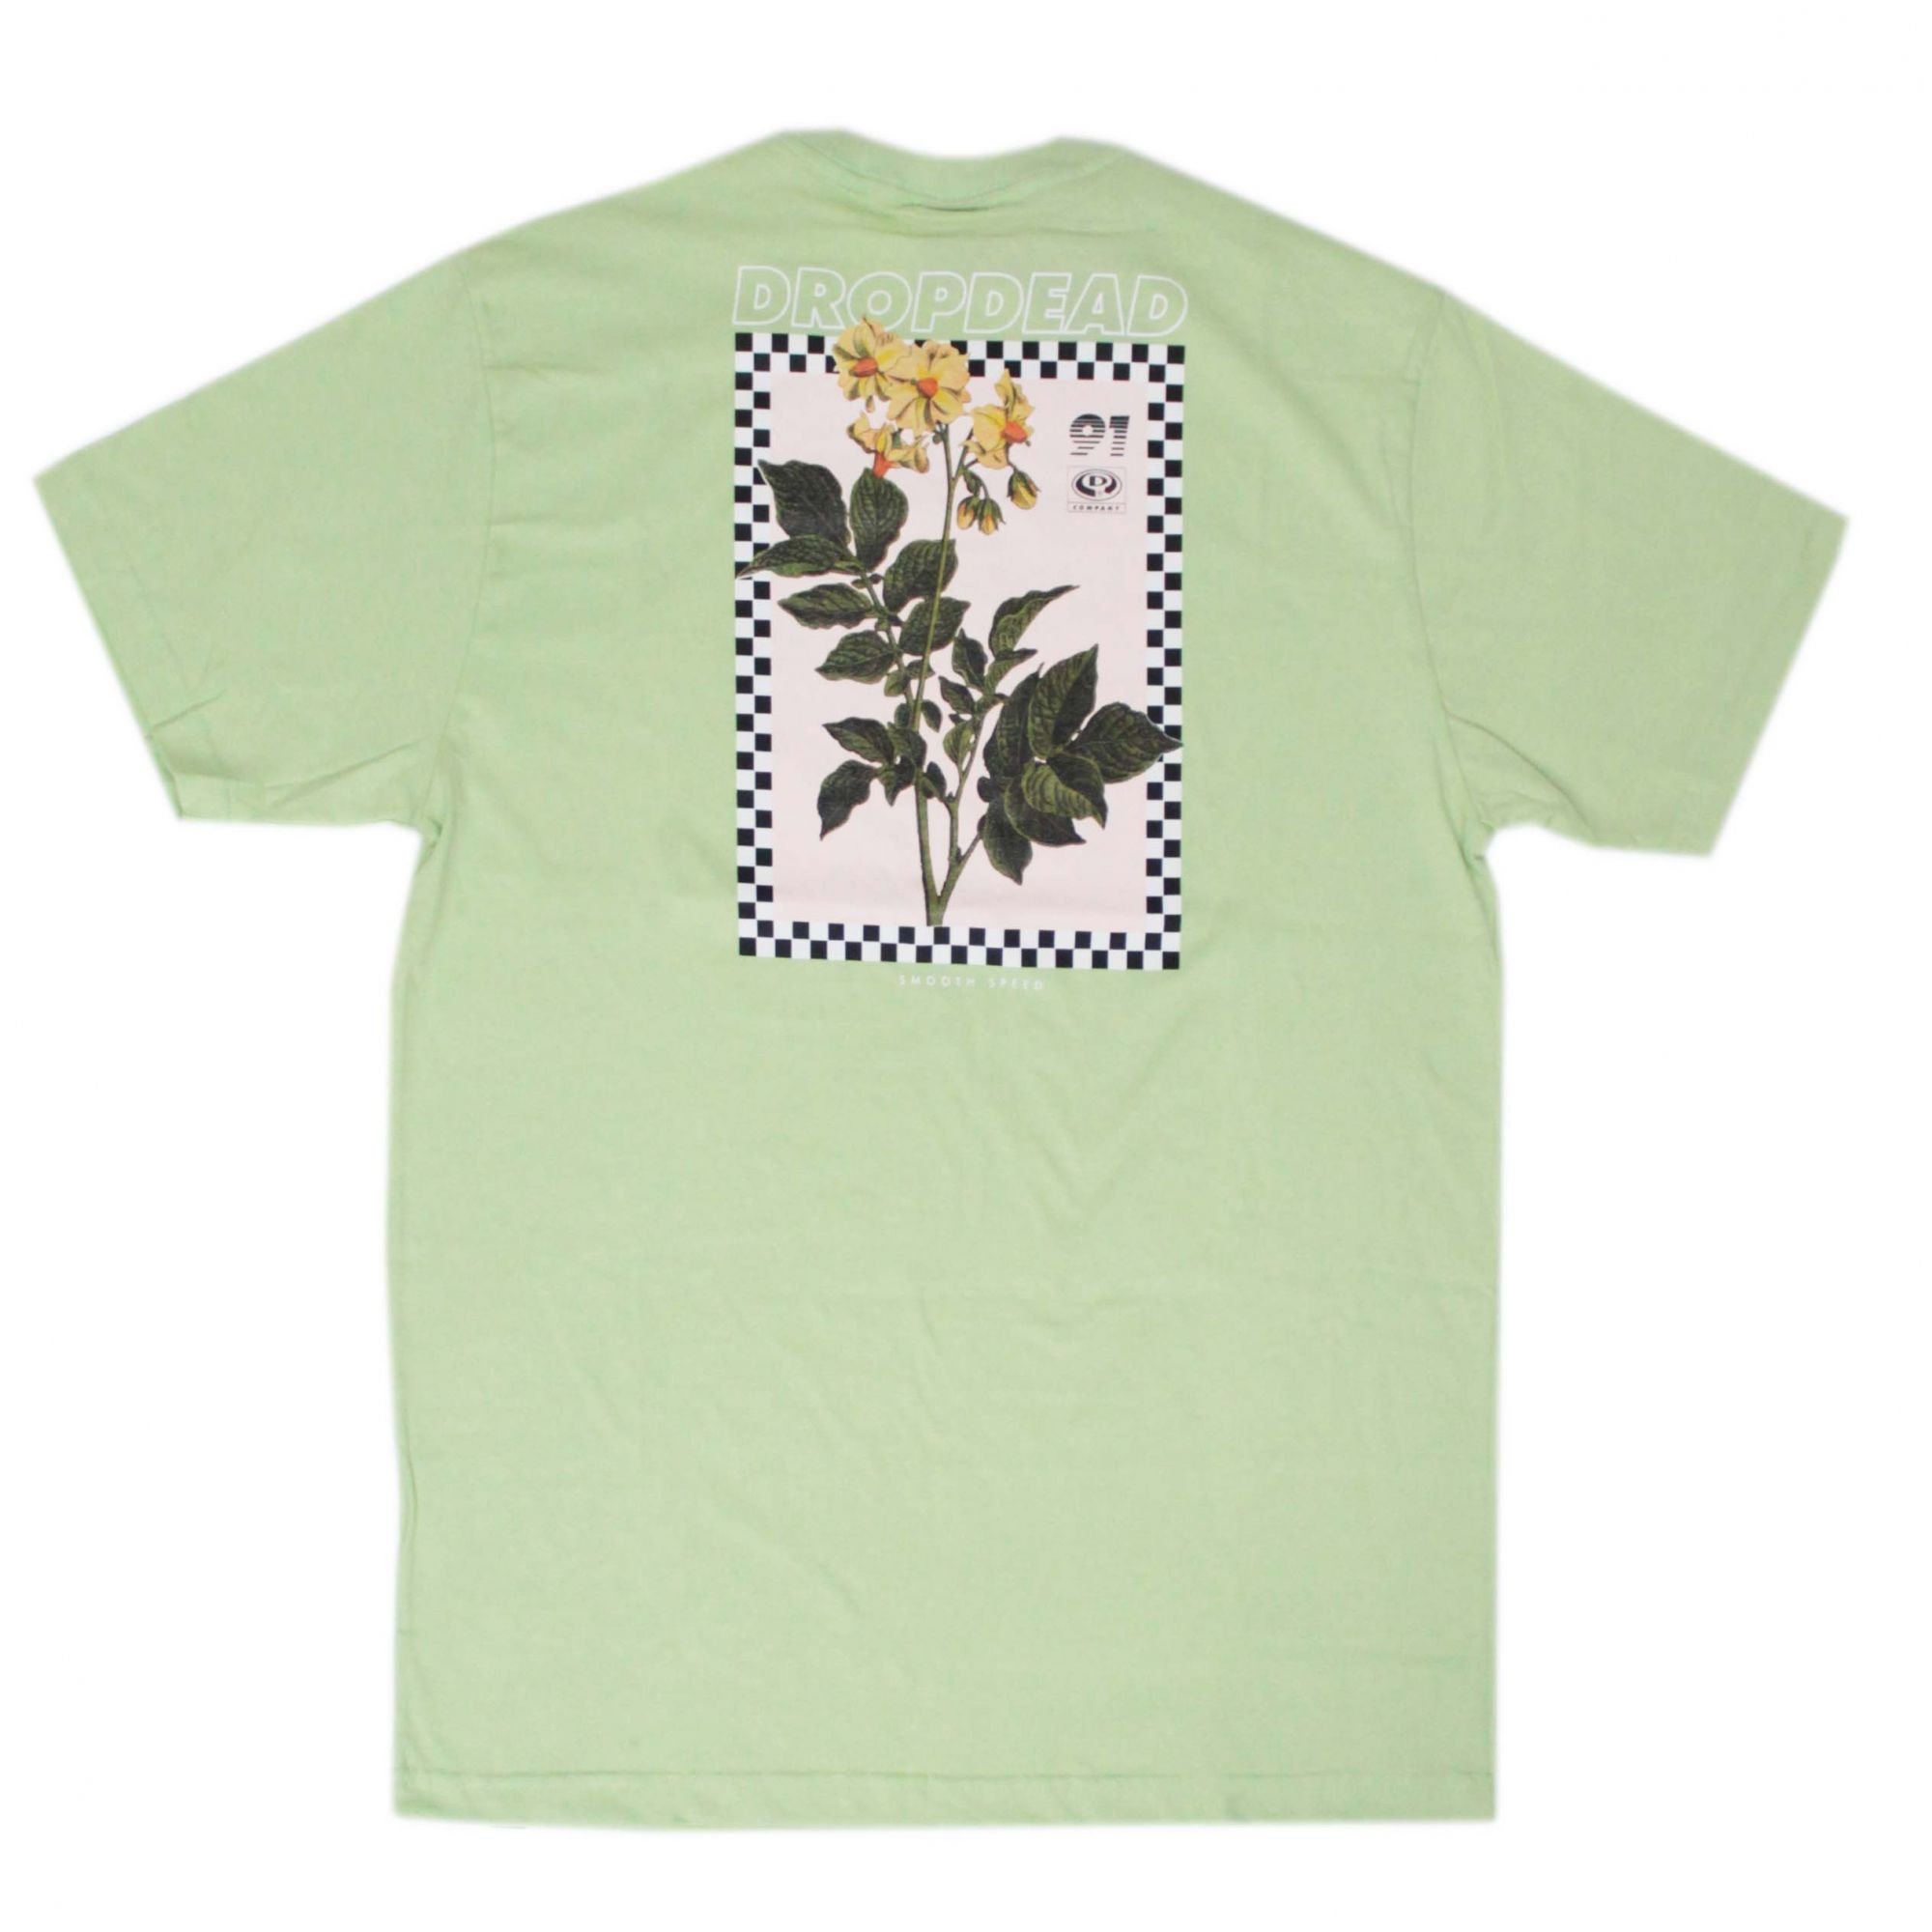 Camiseta Drop Dead Smooth Speed Verde Claro